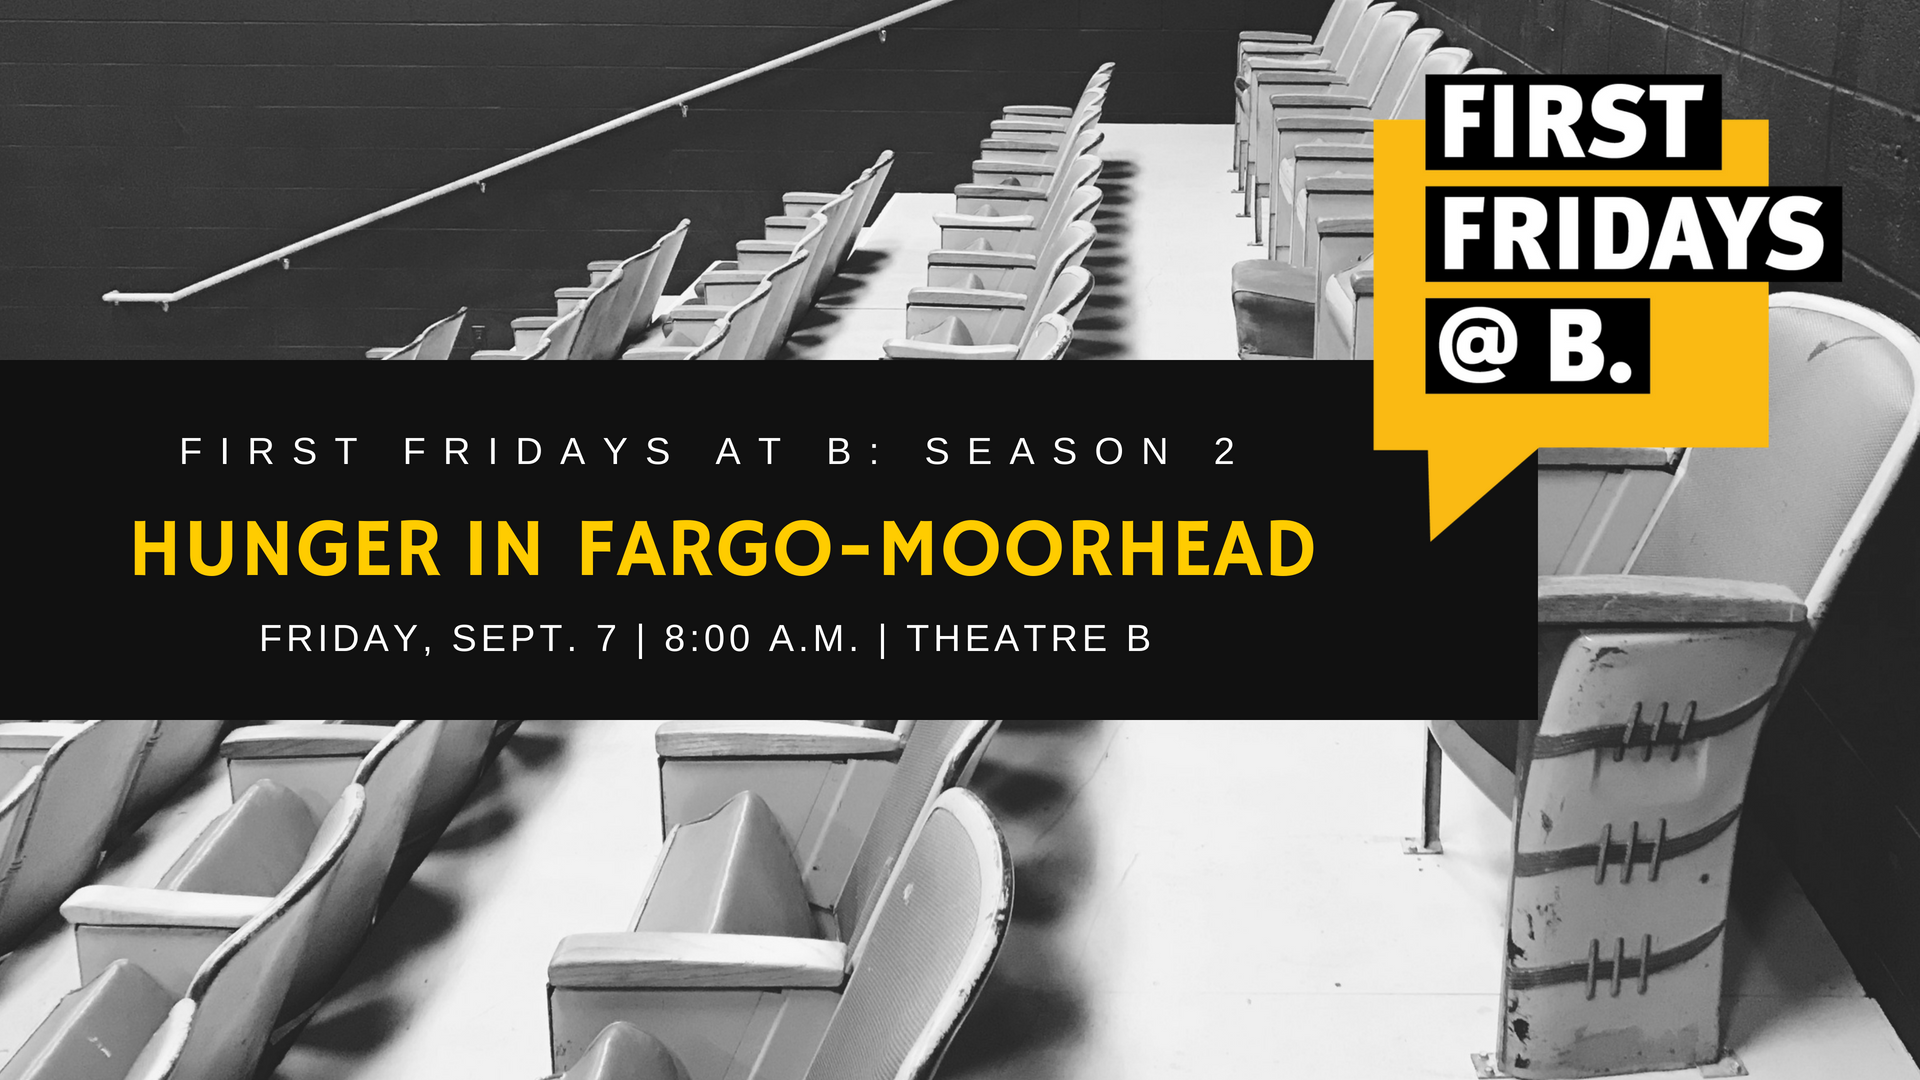 September 2018  - Our second season of First Fridays at B kicked off with an event focused on hunger. The event will feature insight from Melissa Sobolik of Great Plains Food Bank; Andrew Flory of Dorothy Day Food Pantry, & Stacie Loegering of Emergency Food Pantry.    (Watch video)